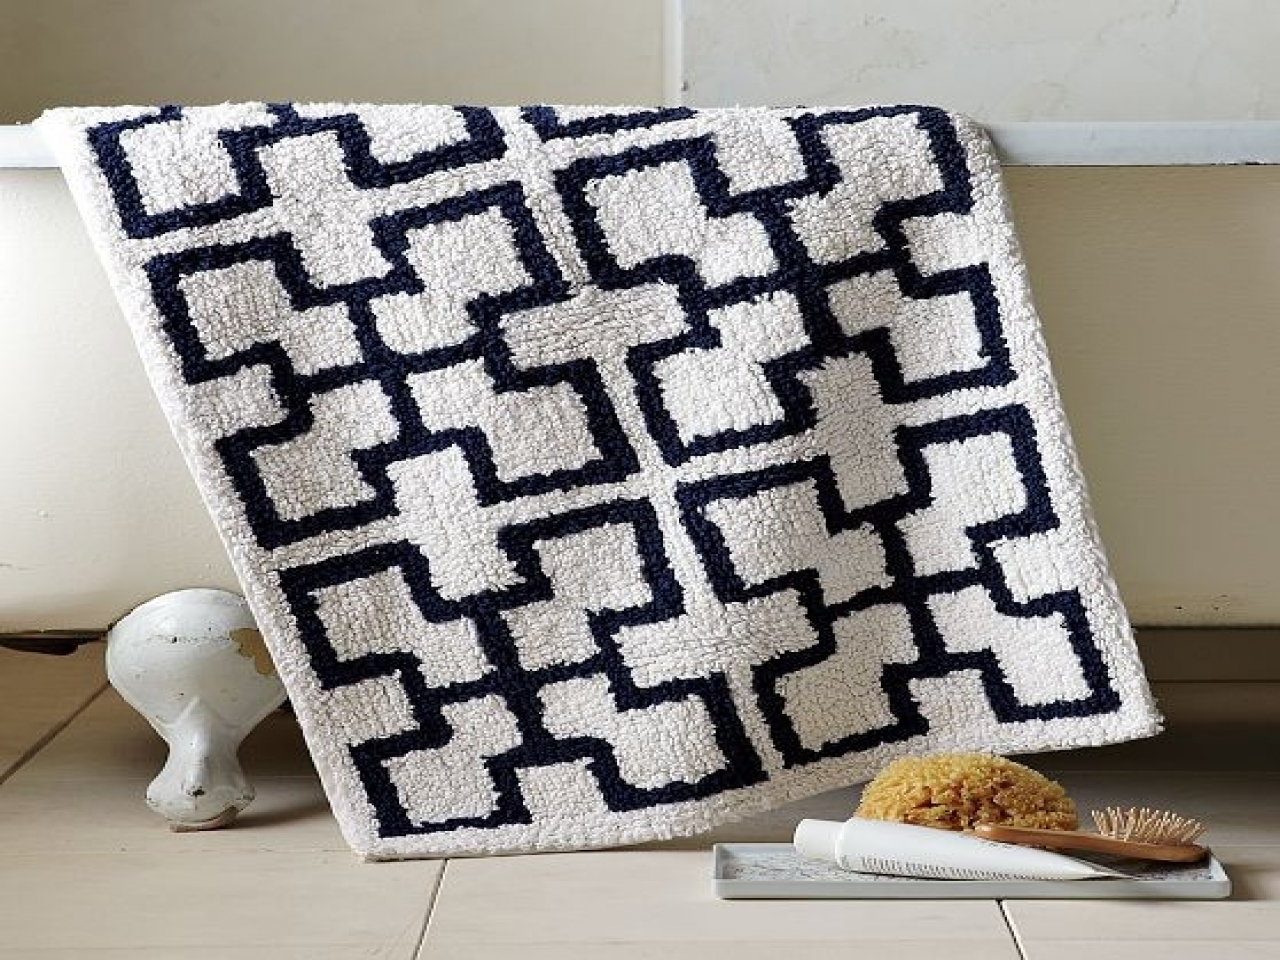 Permalink to Bed Bath Mats